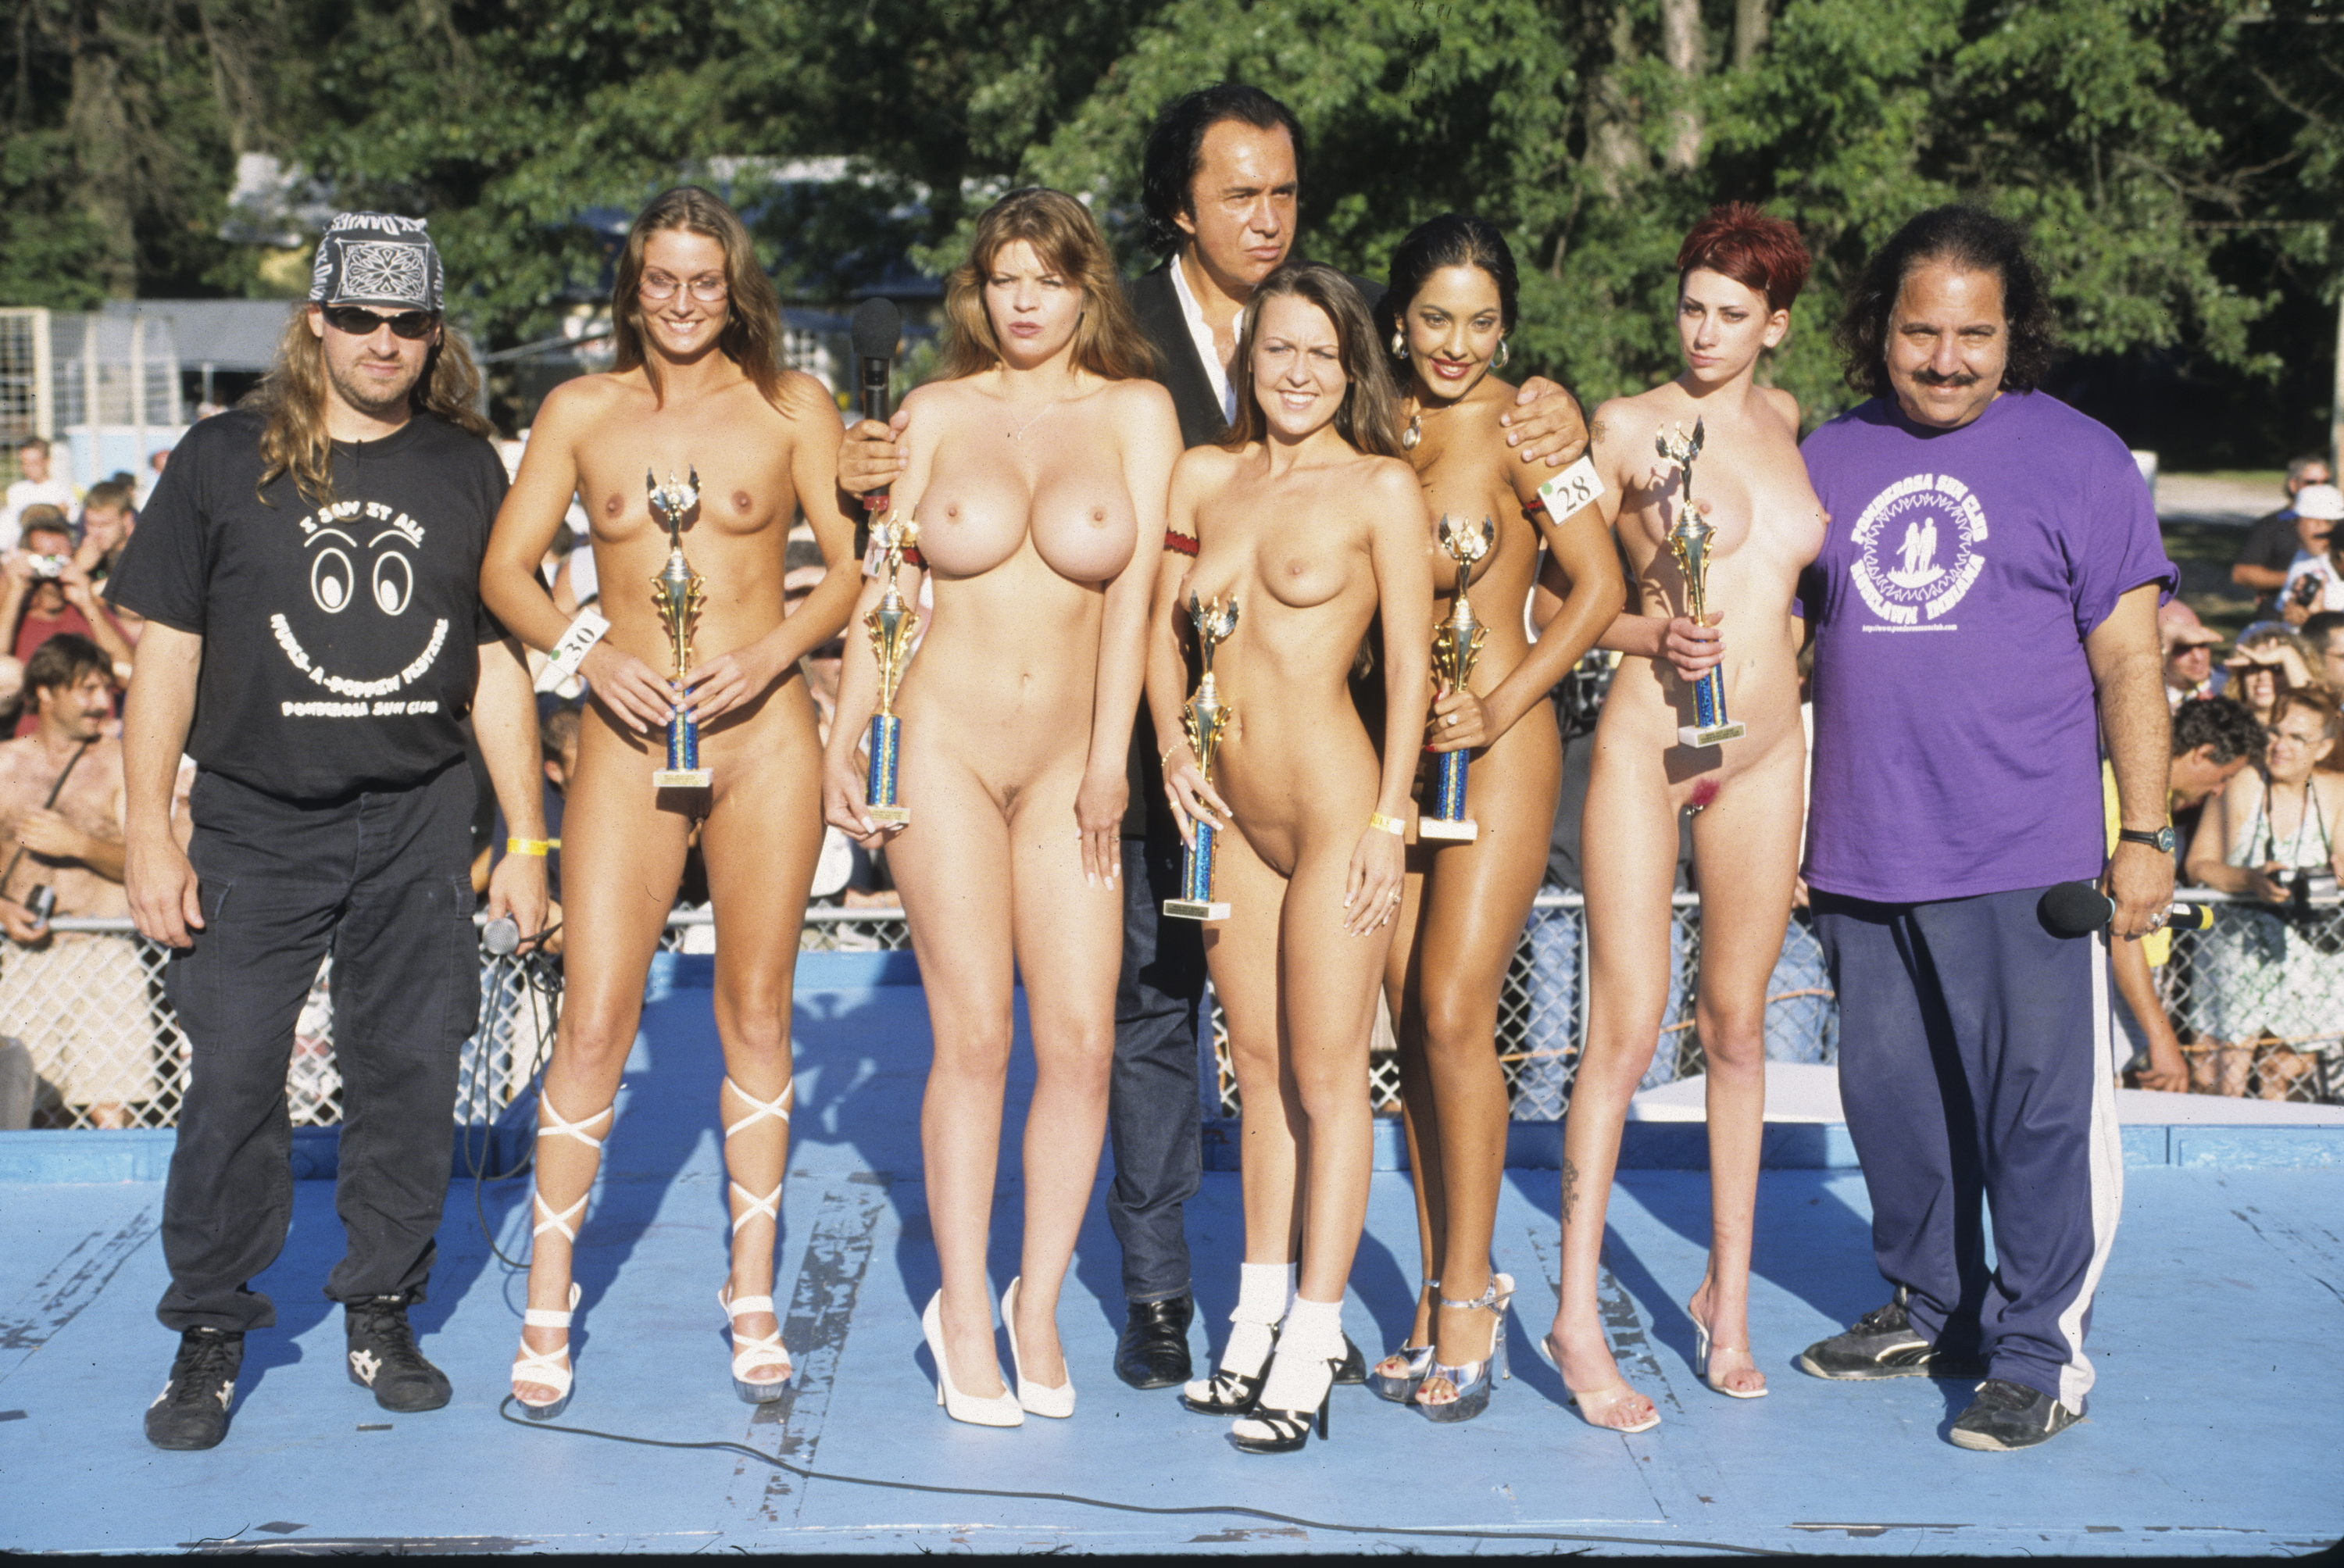 naked-picture-contest-petite-bathing-suits-one-piece